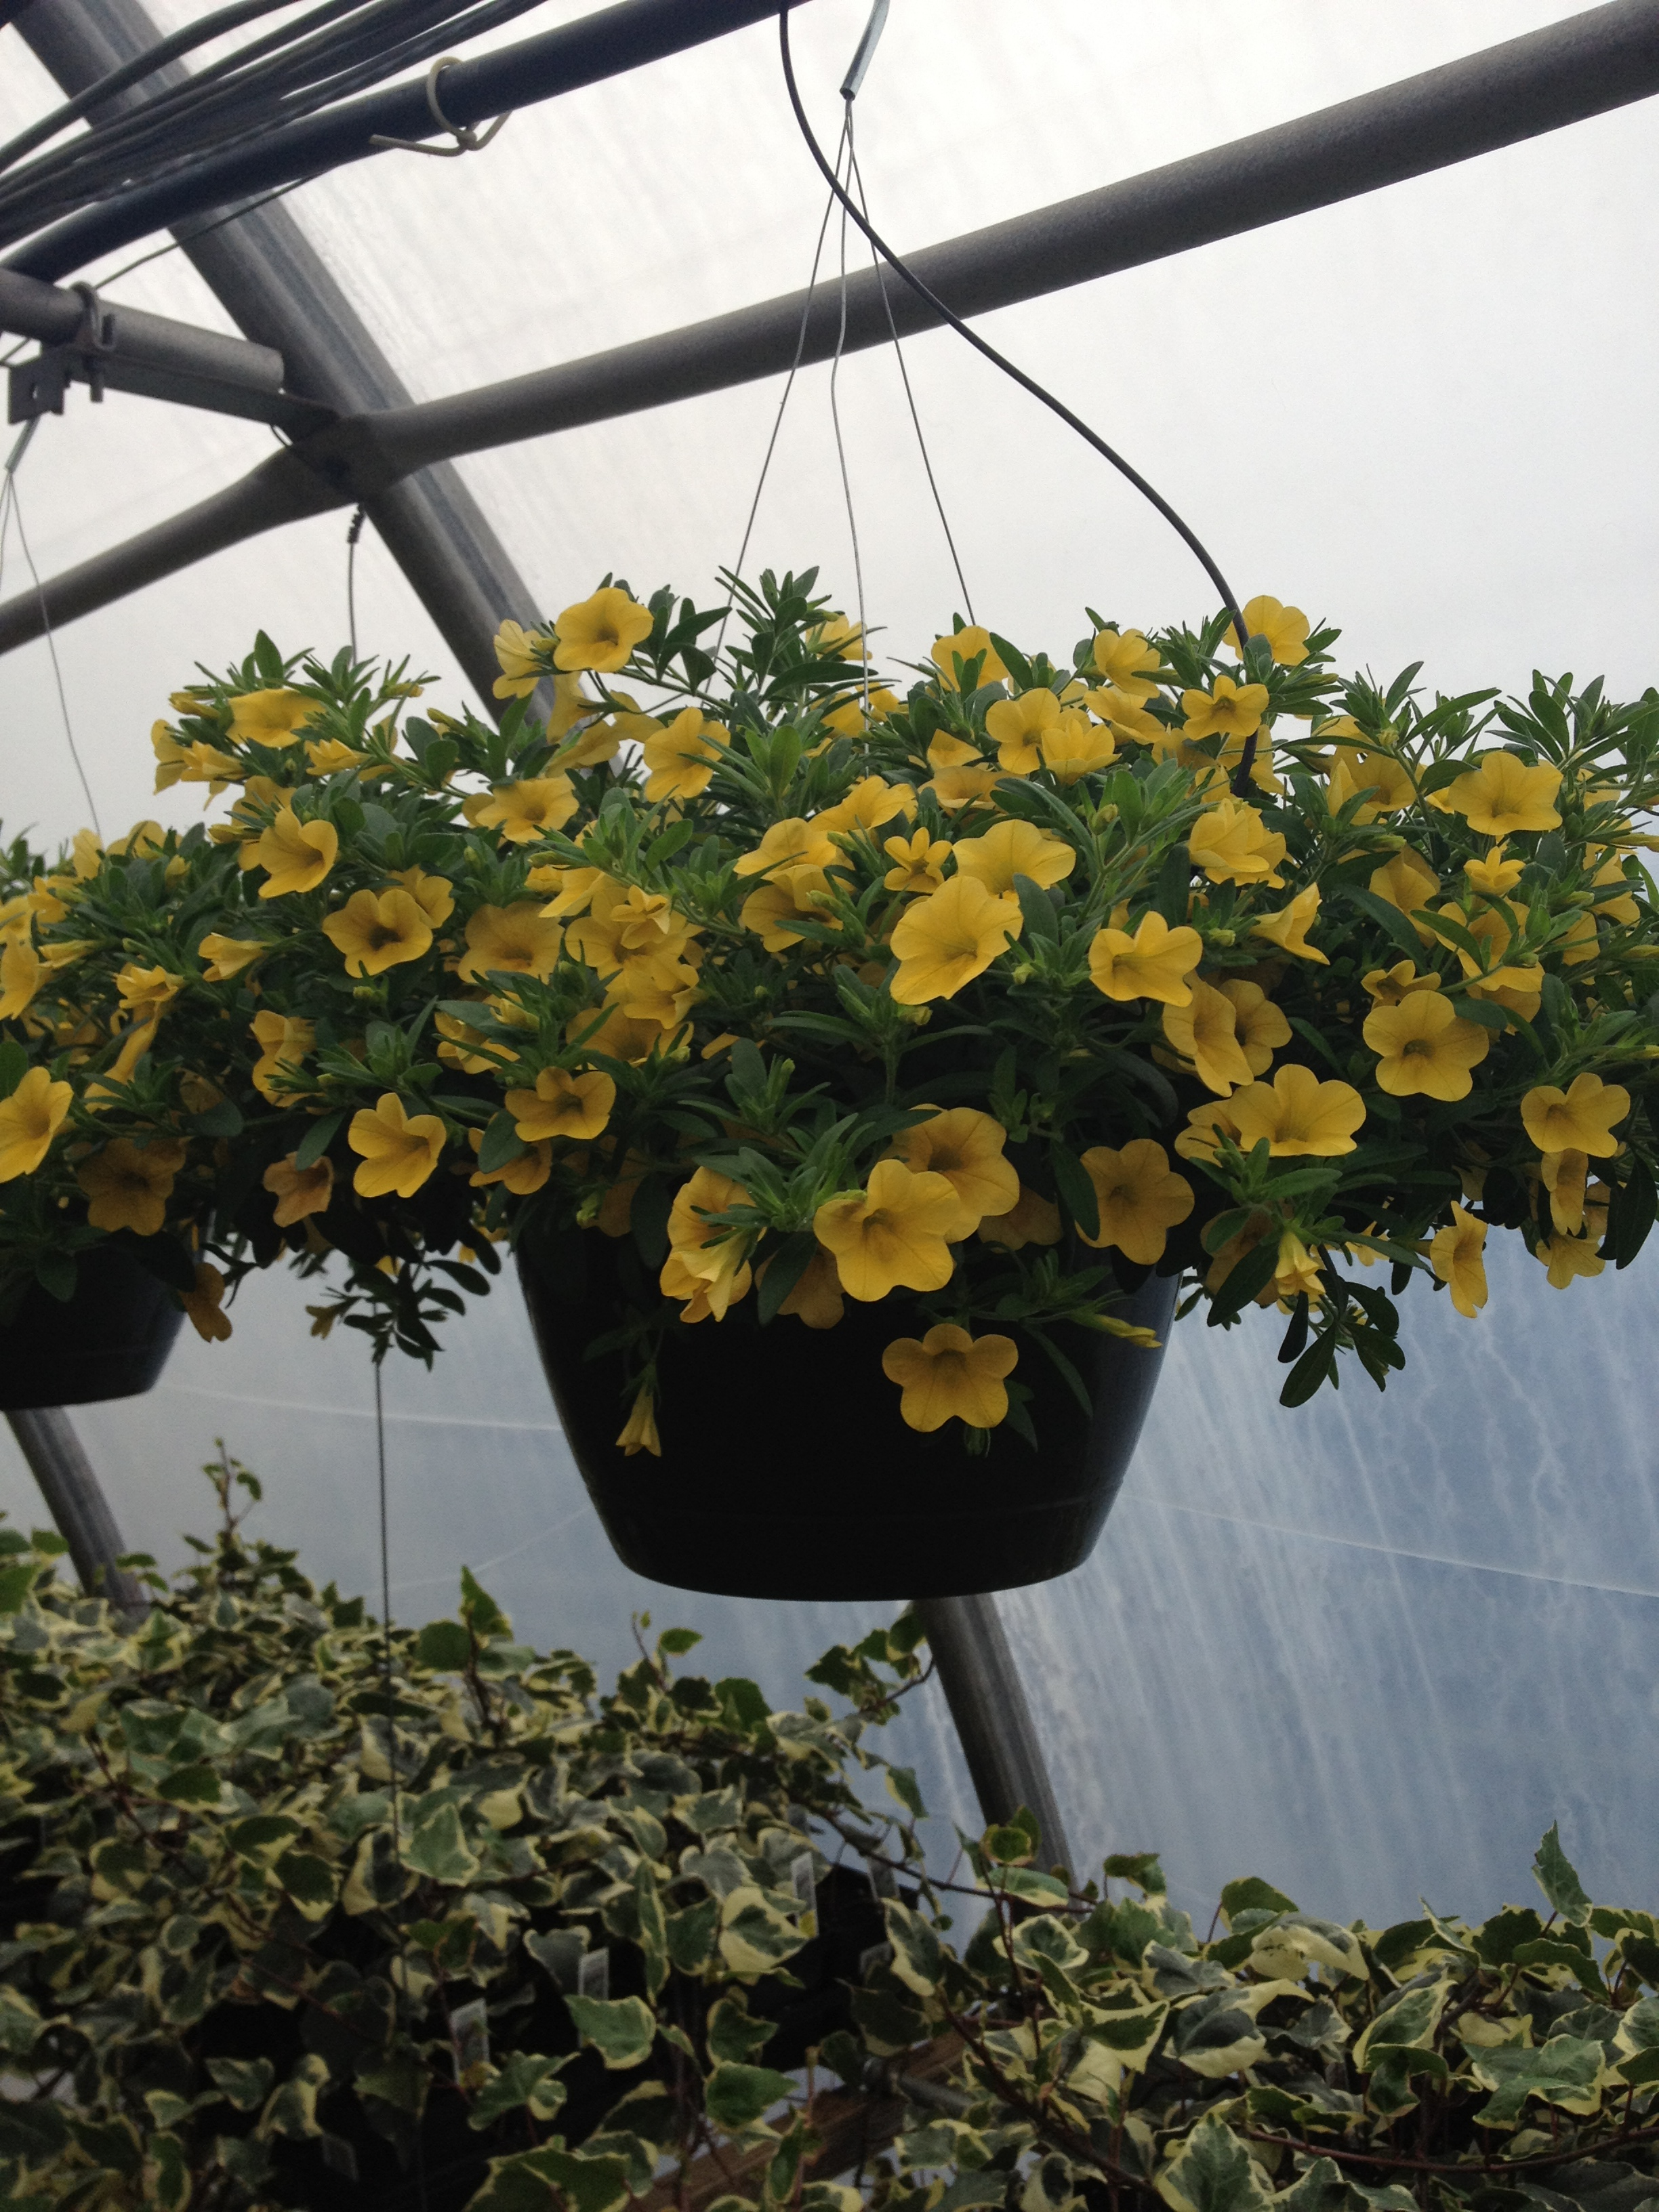 "At Schlegel Greenhouse we feature Calibrachoa in a large variety of items. They can be bought in 4.5"" pots, 8"" sun combo planters, 12"" sun combo planters, 10"" hanging baskets (in mixed colors), and in 10"", 12"", and 16"" combination baskets. They are an excellent performer through May and June and a very consistent seller."